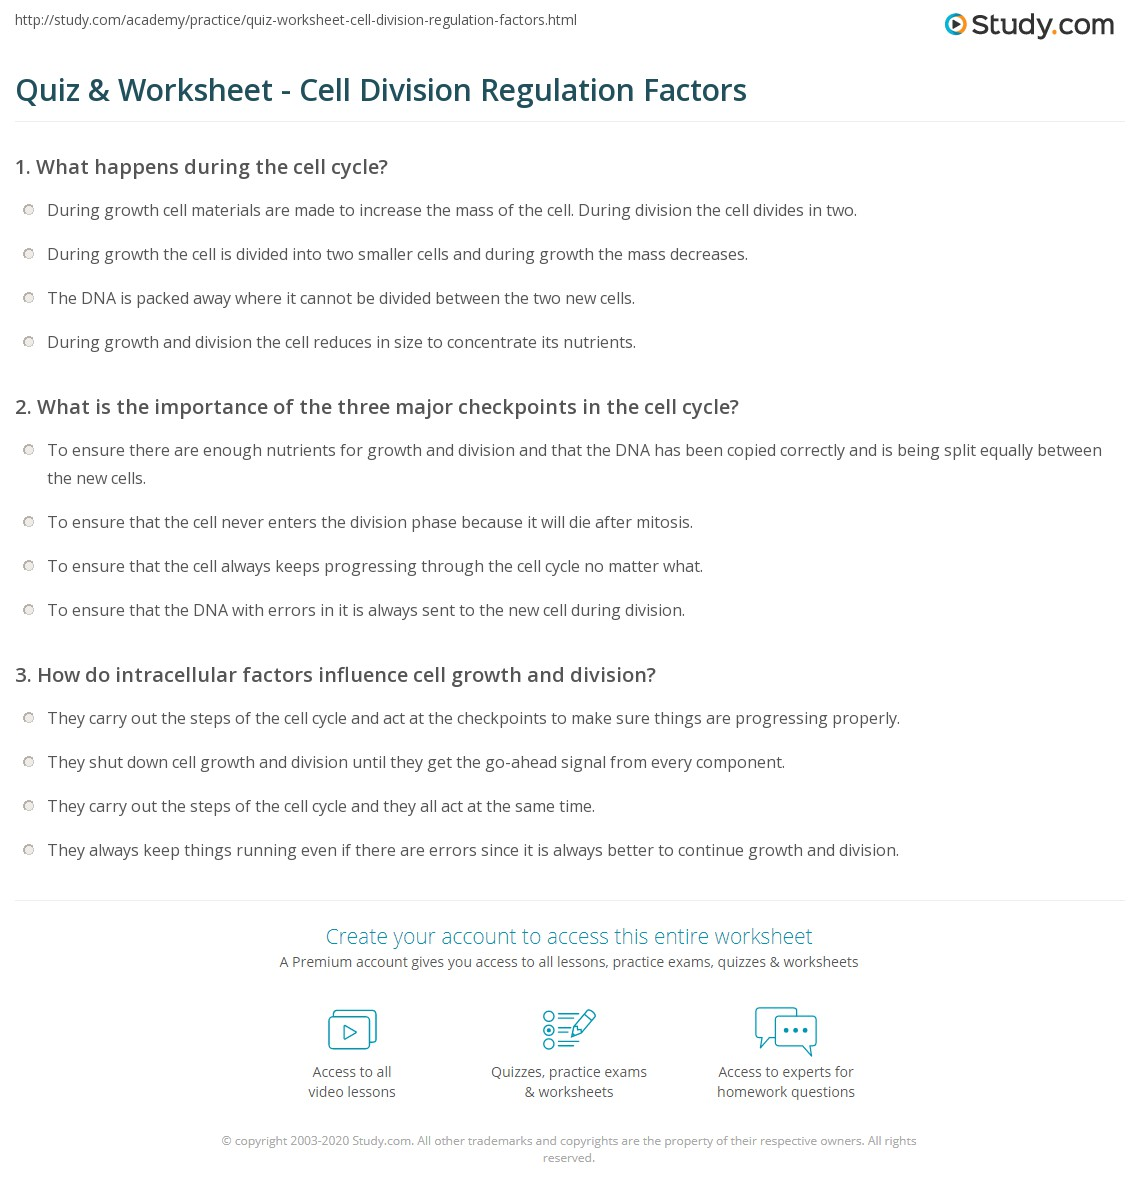 Quiz & Worksheet - Cell Division Regulation Factors | Study.com